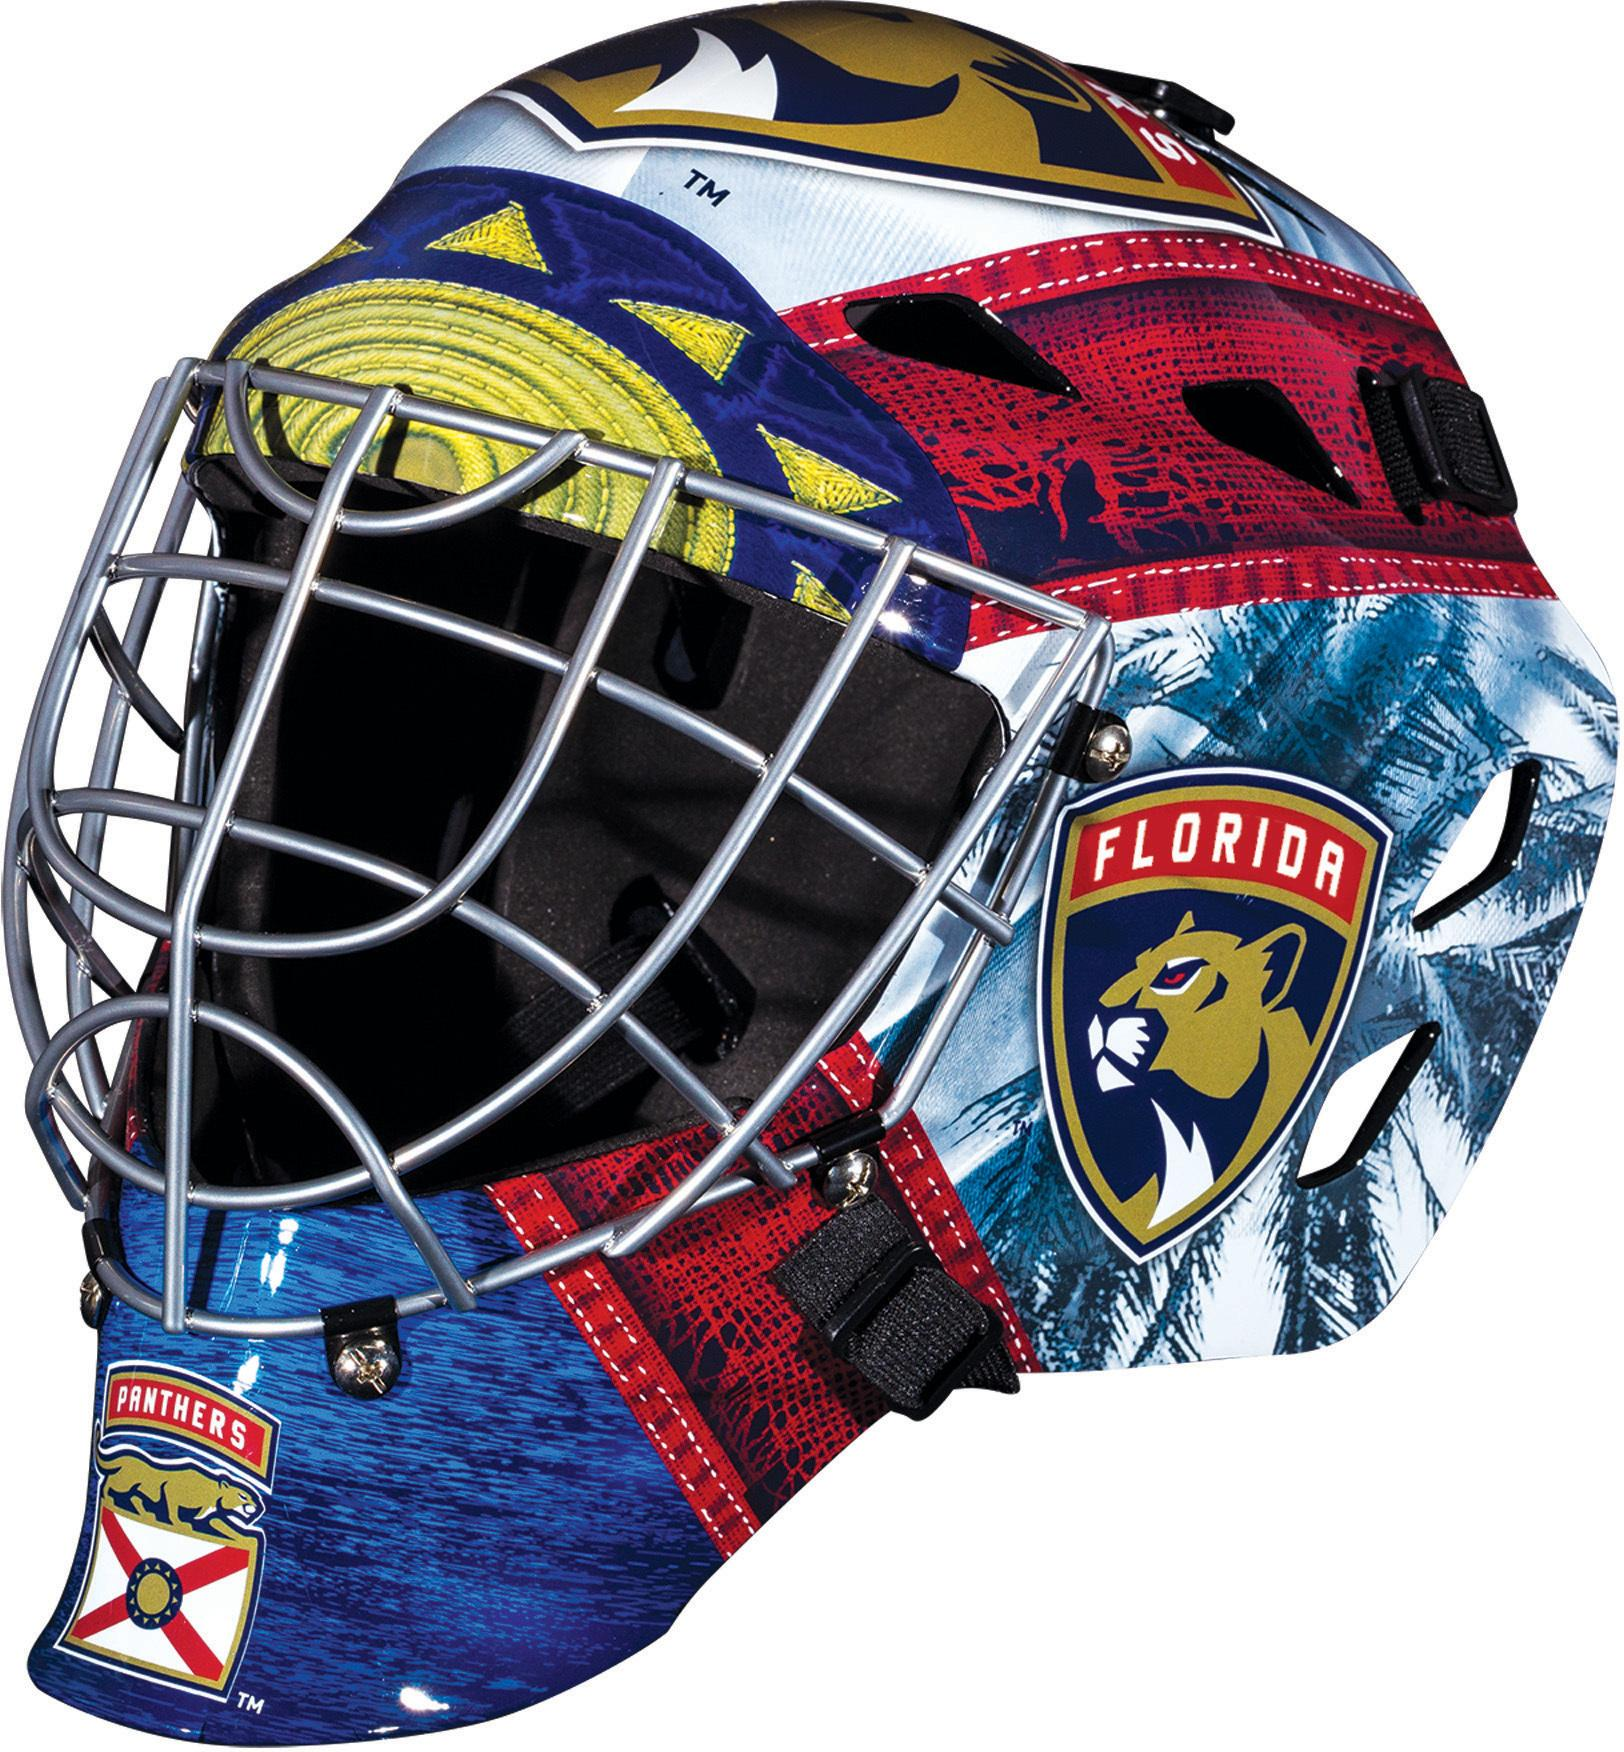 Florida Panthers Unsigned Franklin Sports Replica Full-Size Goalie Mask